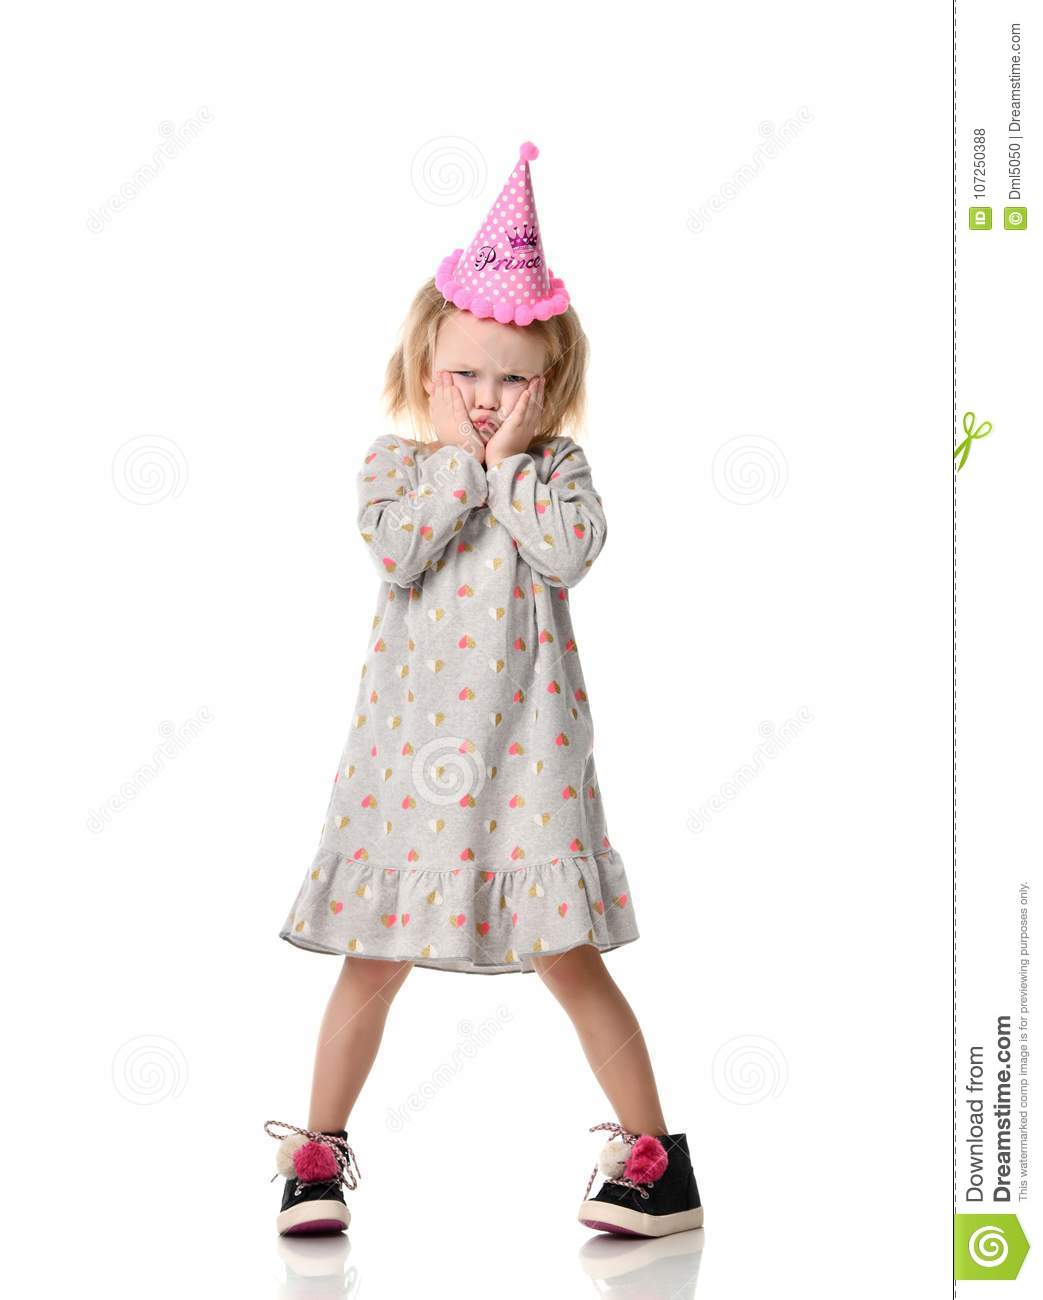 Young blond girl in birthday party princess hat upset sad emotions